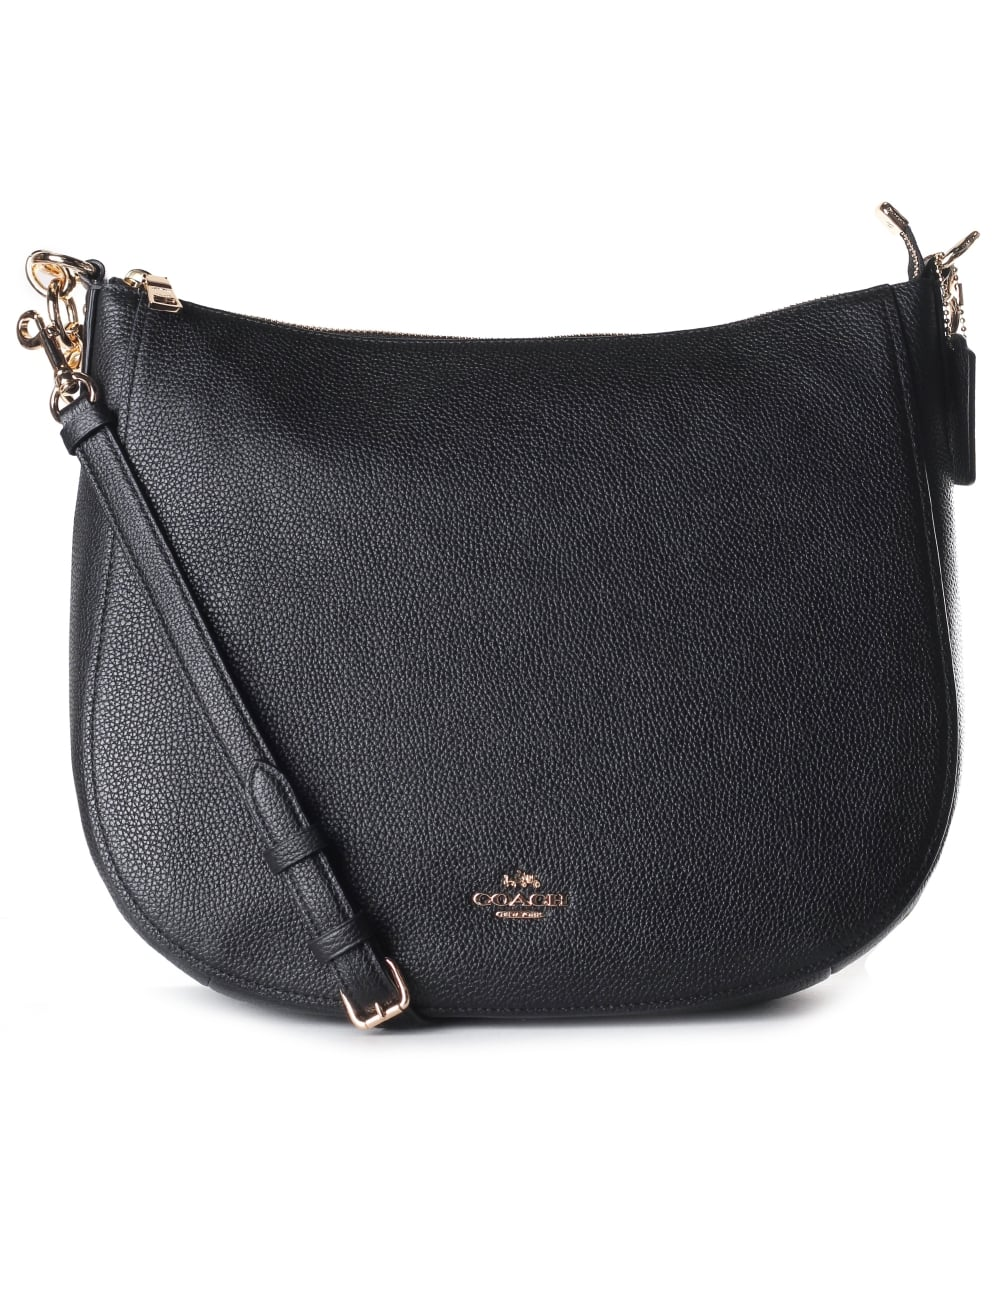 eb71e7f99 Coach Women's Chelsea 32 Hobo Bag